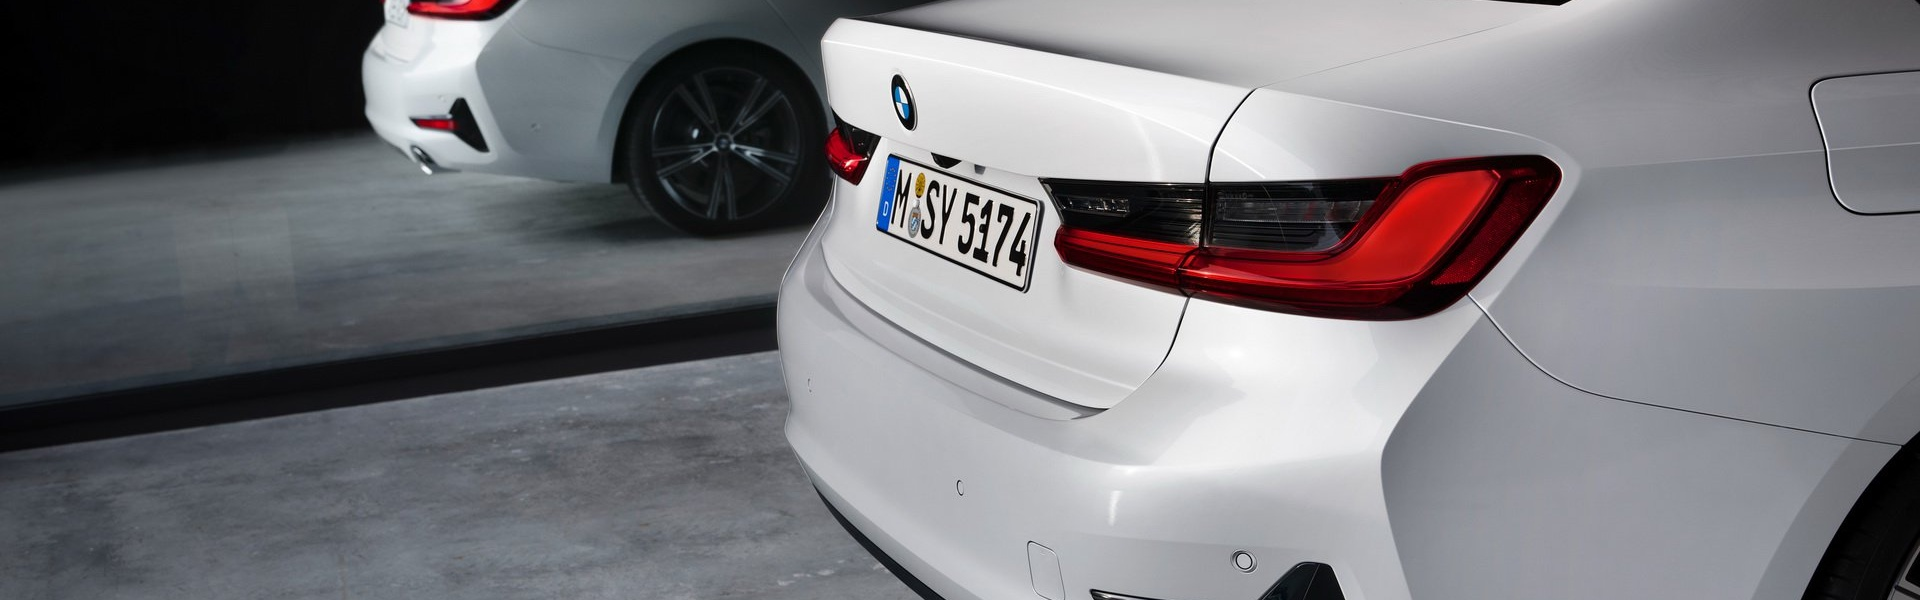 fb23ba47-2019-bmw-3-series-unveiled-paris-72.jpg